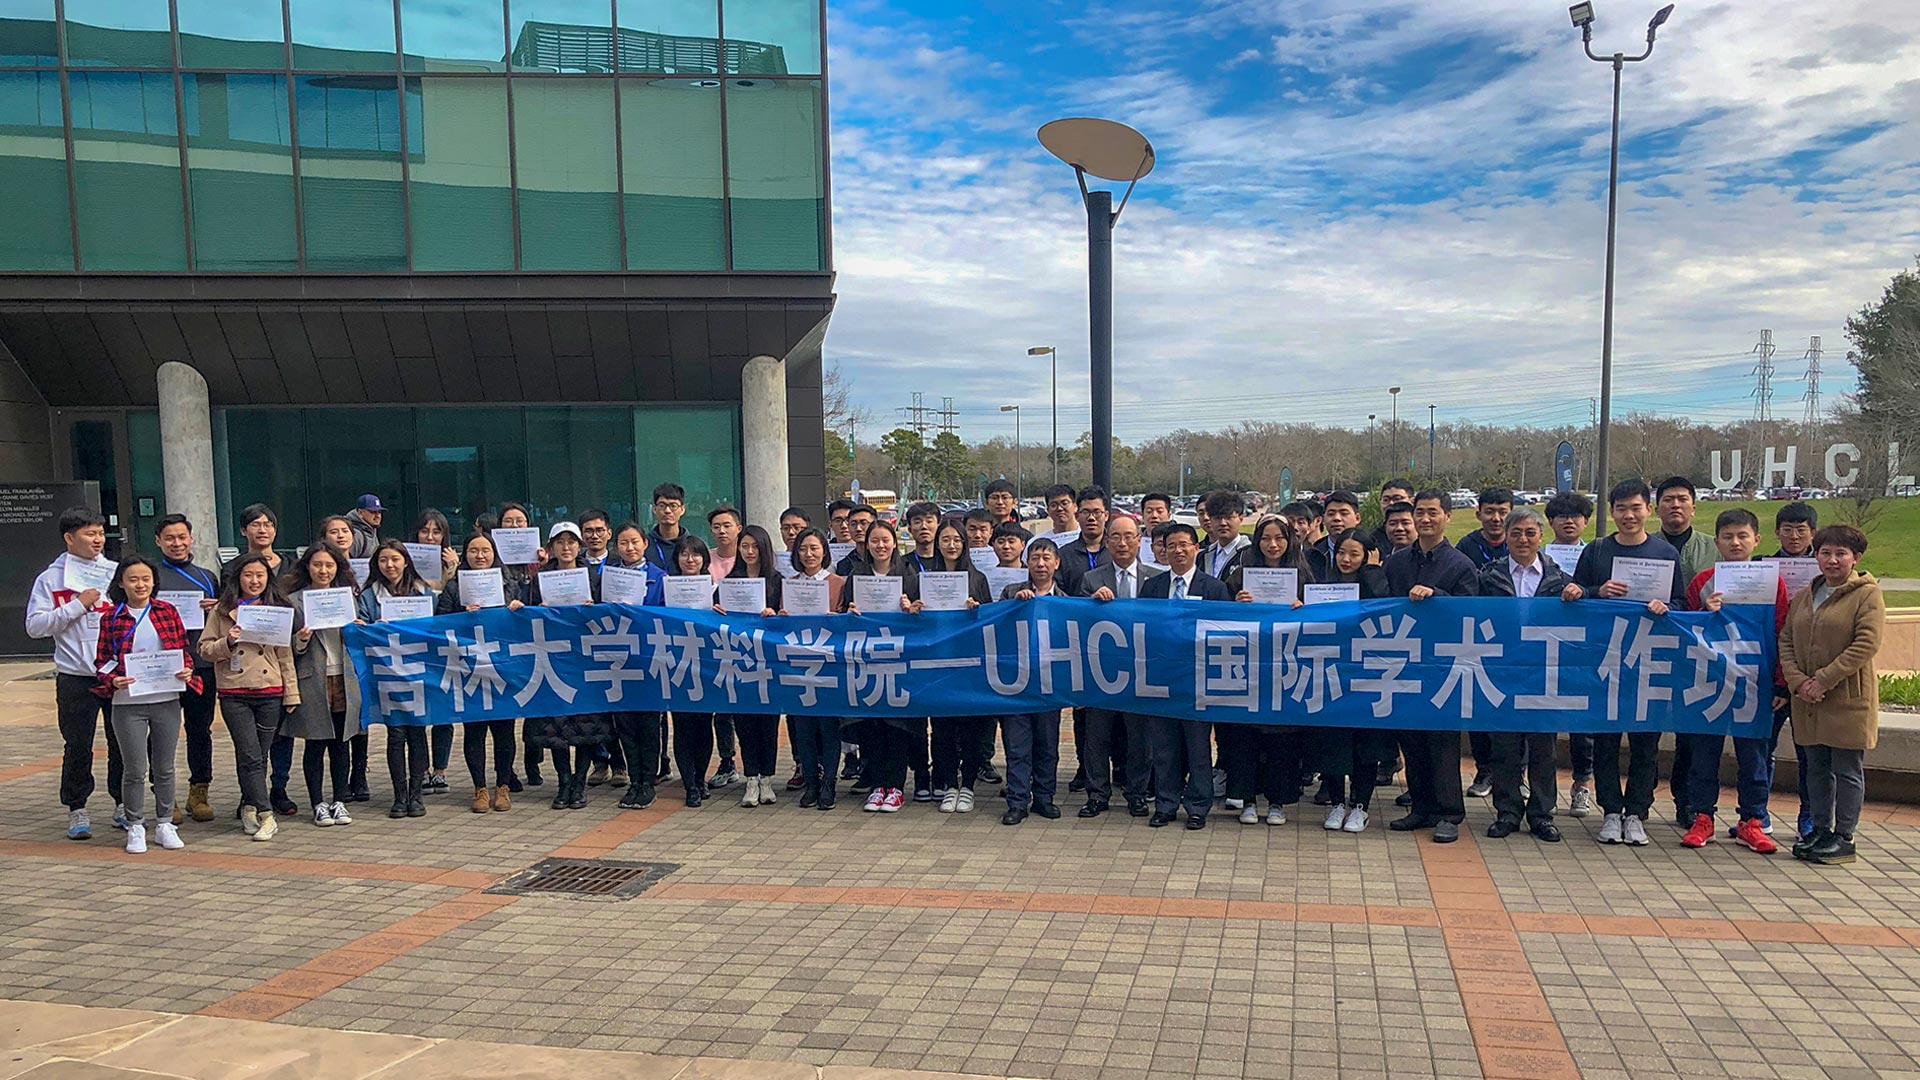 UHCL hosts Chinese chemistry students at materials science workshop